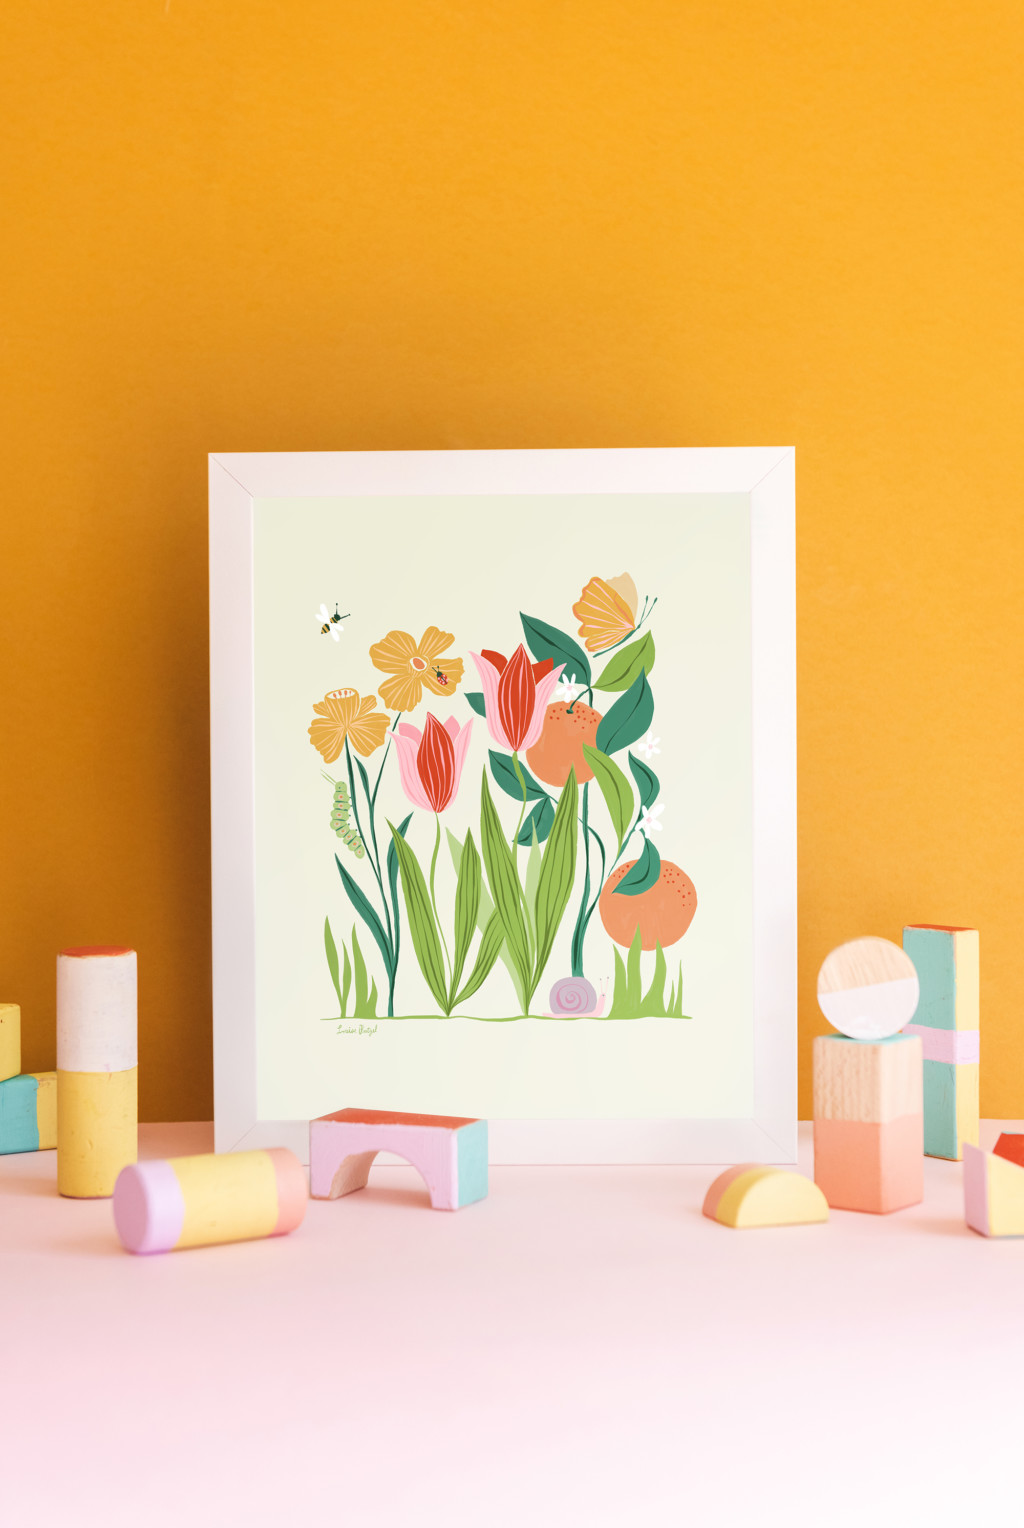 A print of Louise Pretzel's Garden leaning against a gold wall with pastel wooden blocks in front of it.